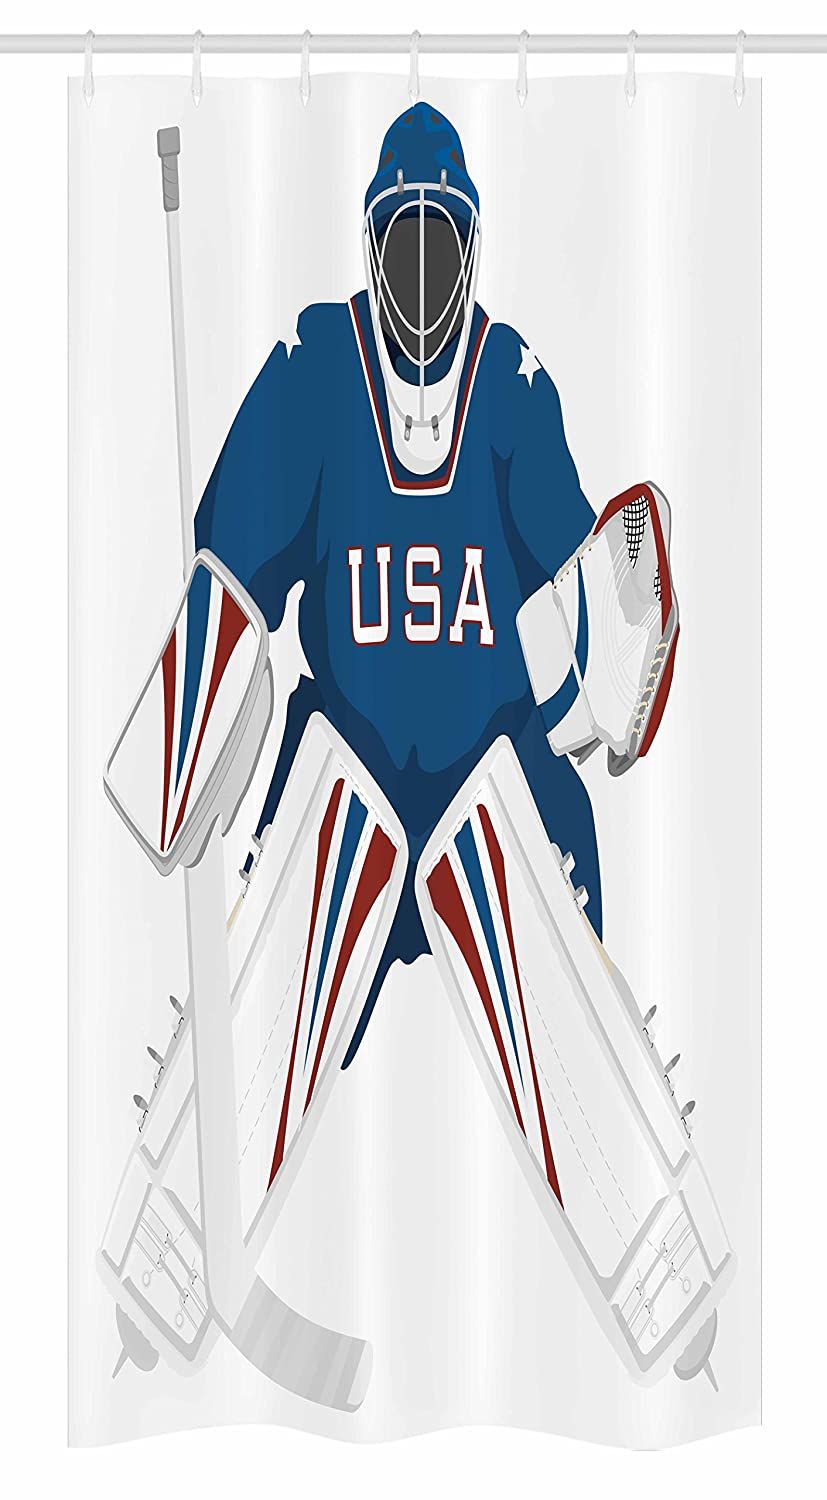 Team USA Hockey Goalie Protection Jersey Sport Wear Illustrations Fabric Bathroom Decor Set with Hooks 36 W x 72 L inches, Ambesonne Sports Decor Stall Shower Curtain